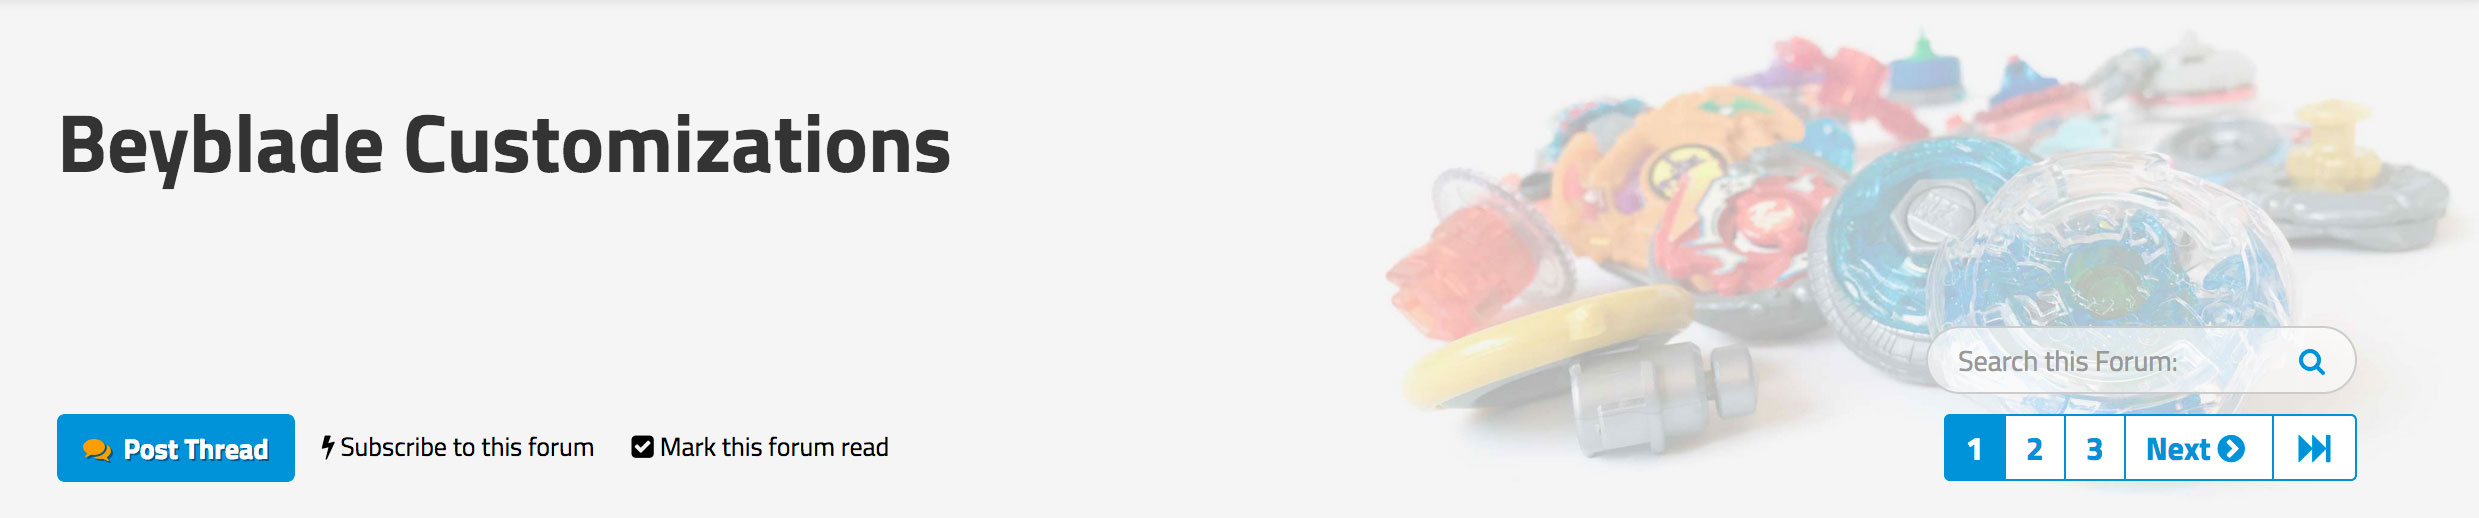 [Image: WBO-Beyblade-Customizations-Forum-Header-Image.jpg]